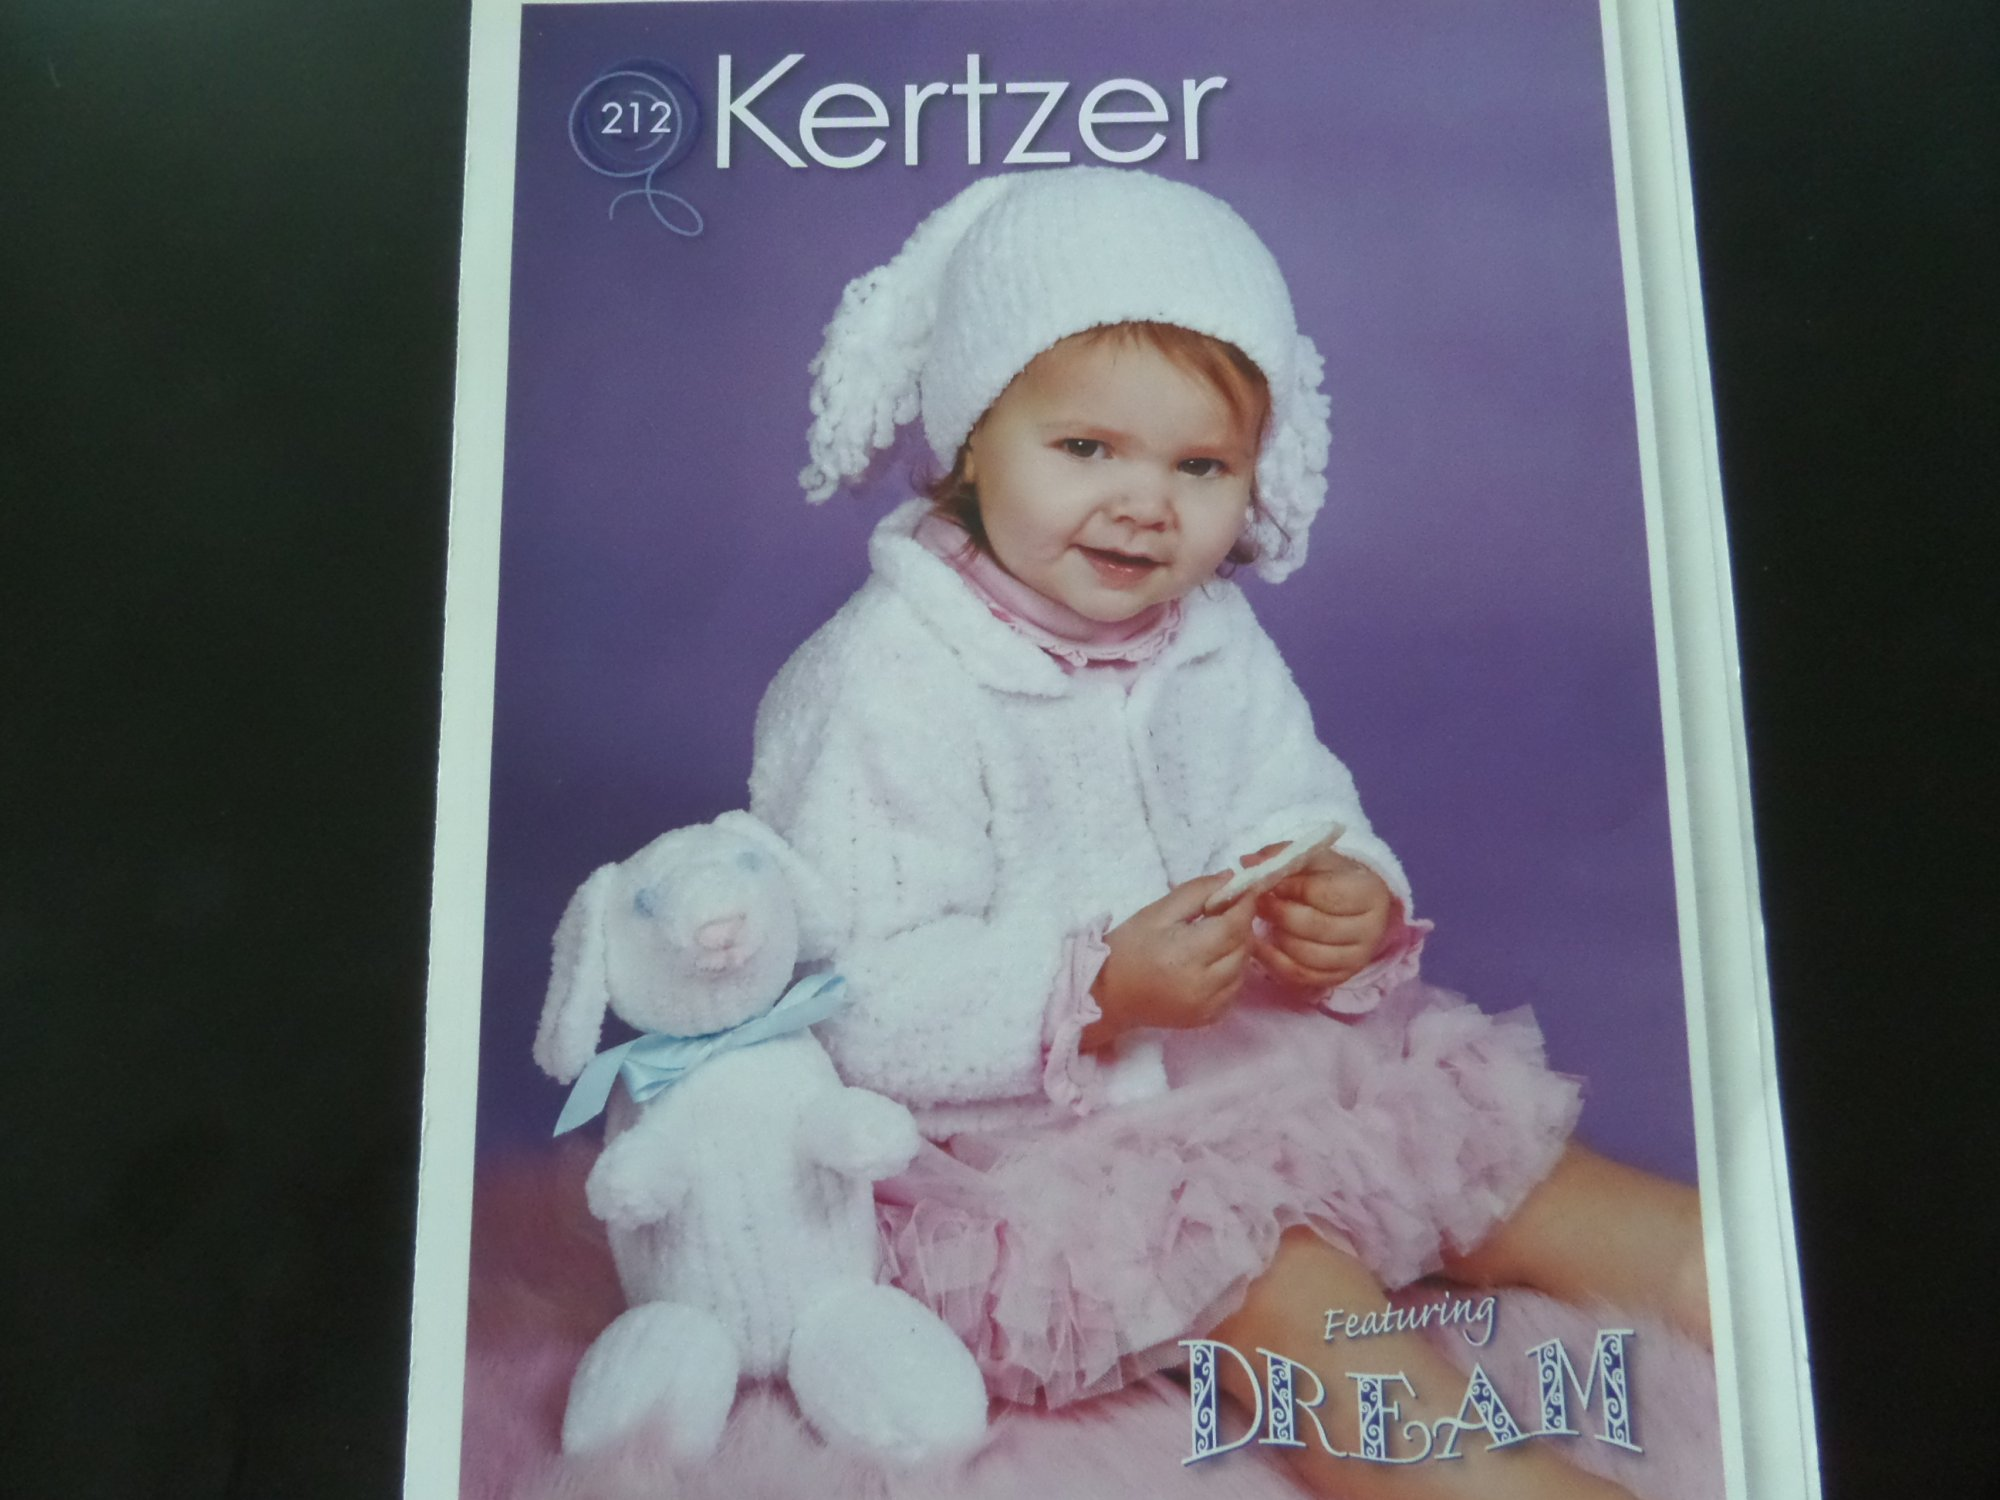 Dream pattern leaflet #212 from Kertzer